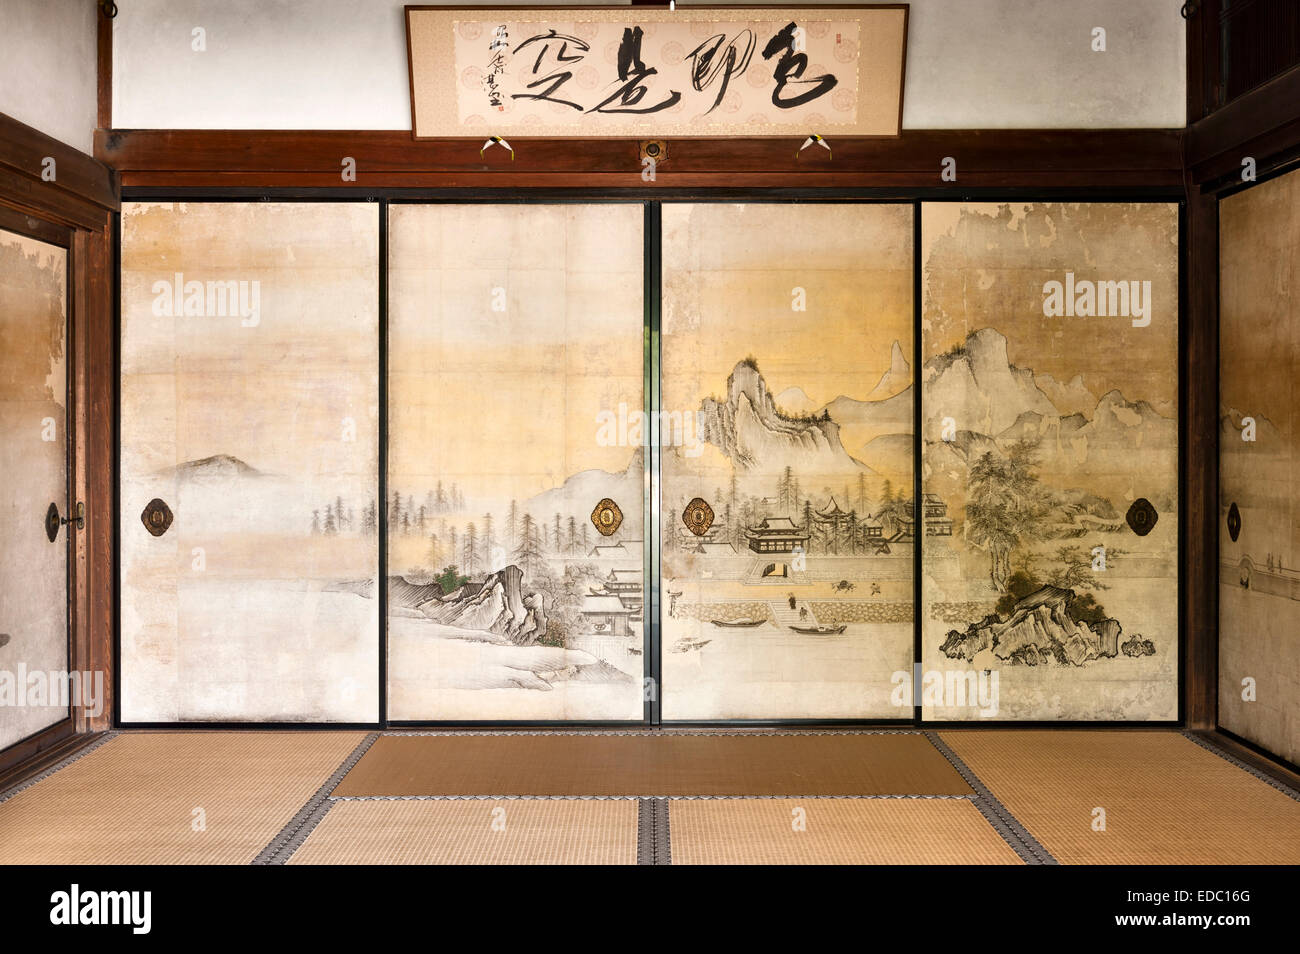 https www alamyimages fr photo image shoden ji temple zen kyoto japon 17c paysages chinois peint sur fusuma cloisons coulissantes dans les salles de reception 77096392 html